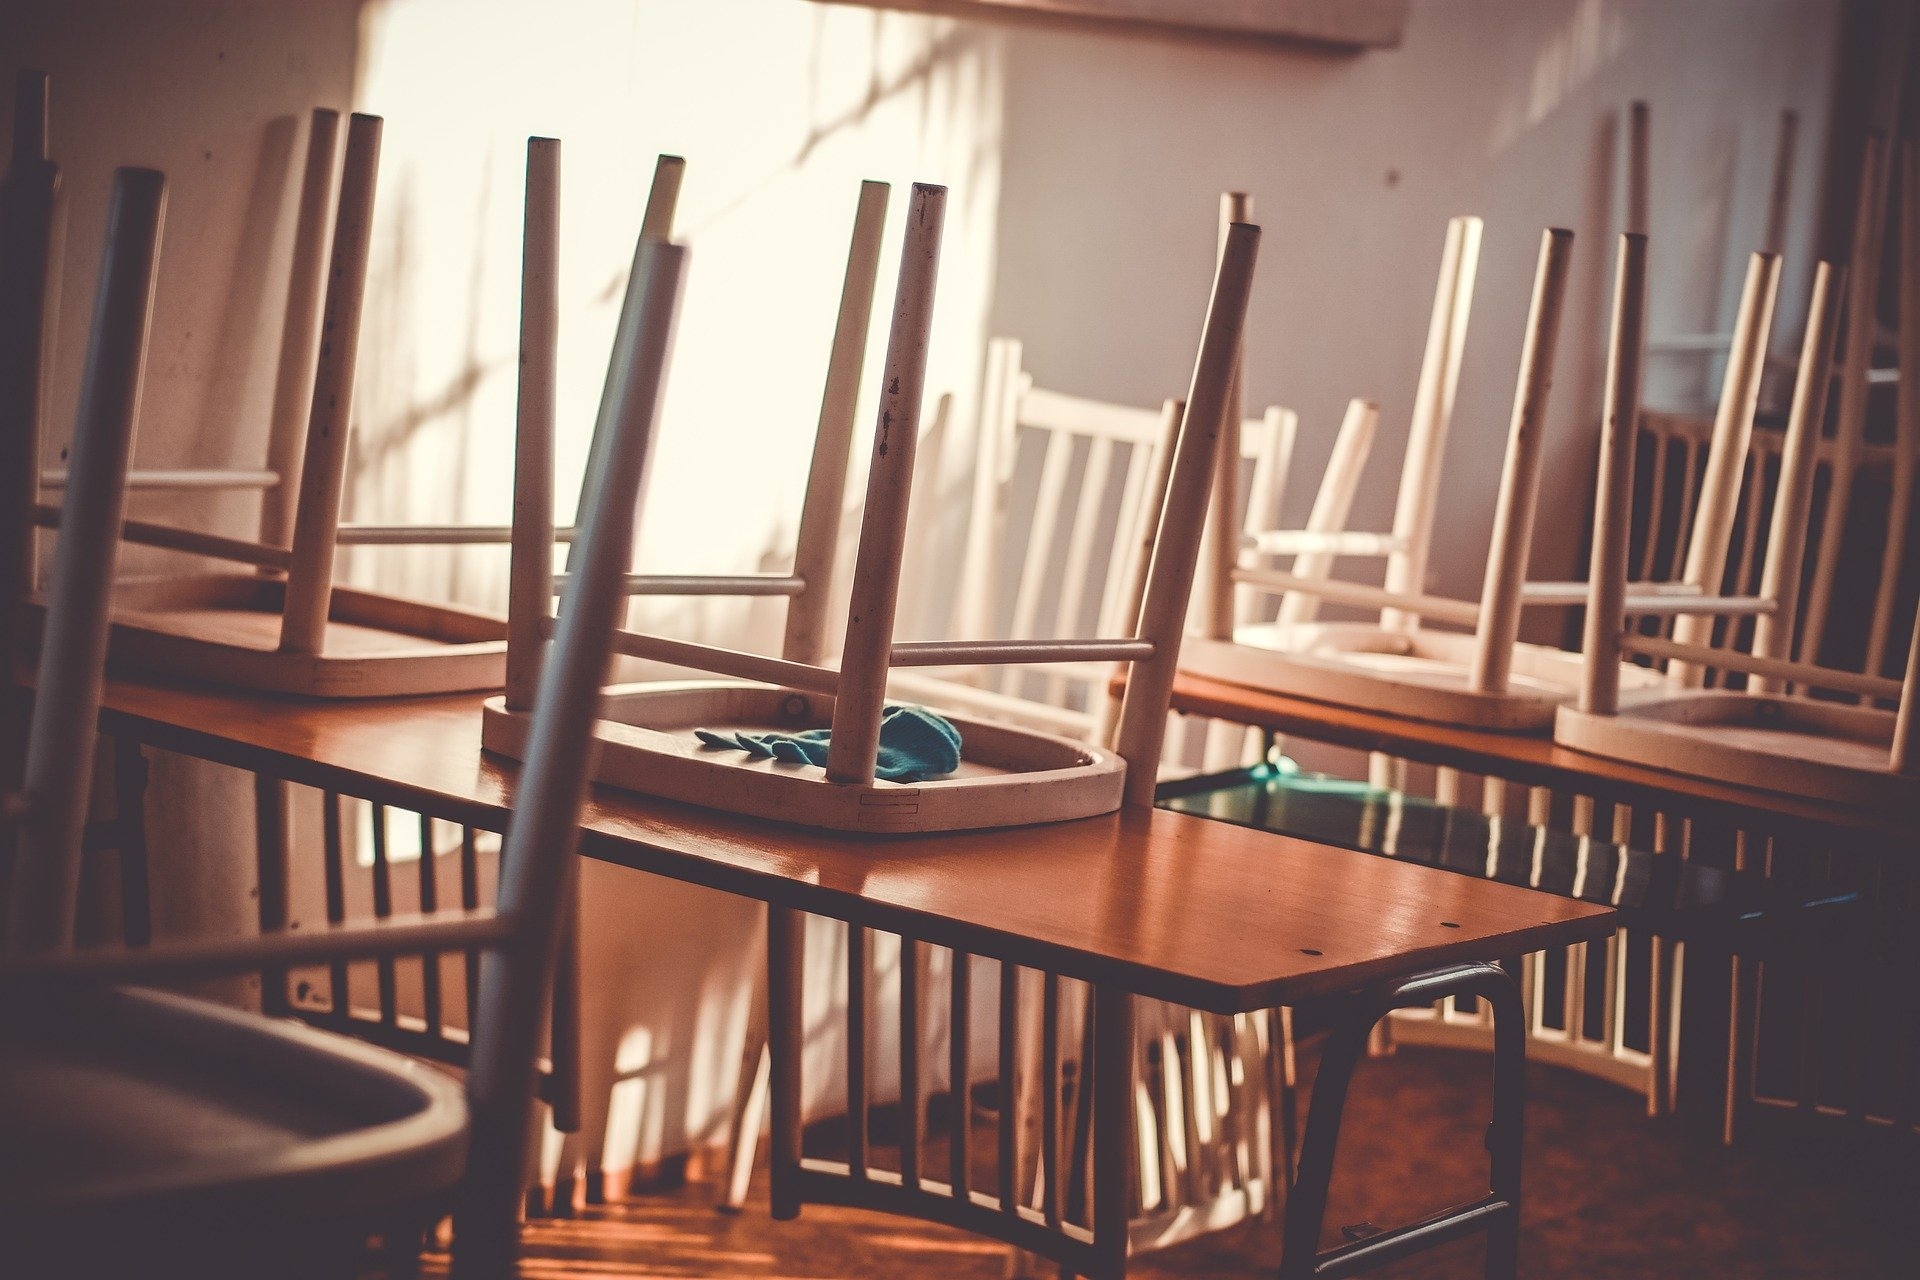 Photo of an empty classroom with the chairs turned over on the tables